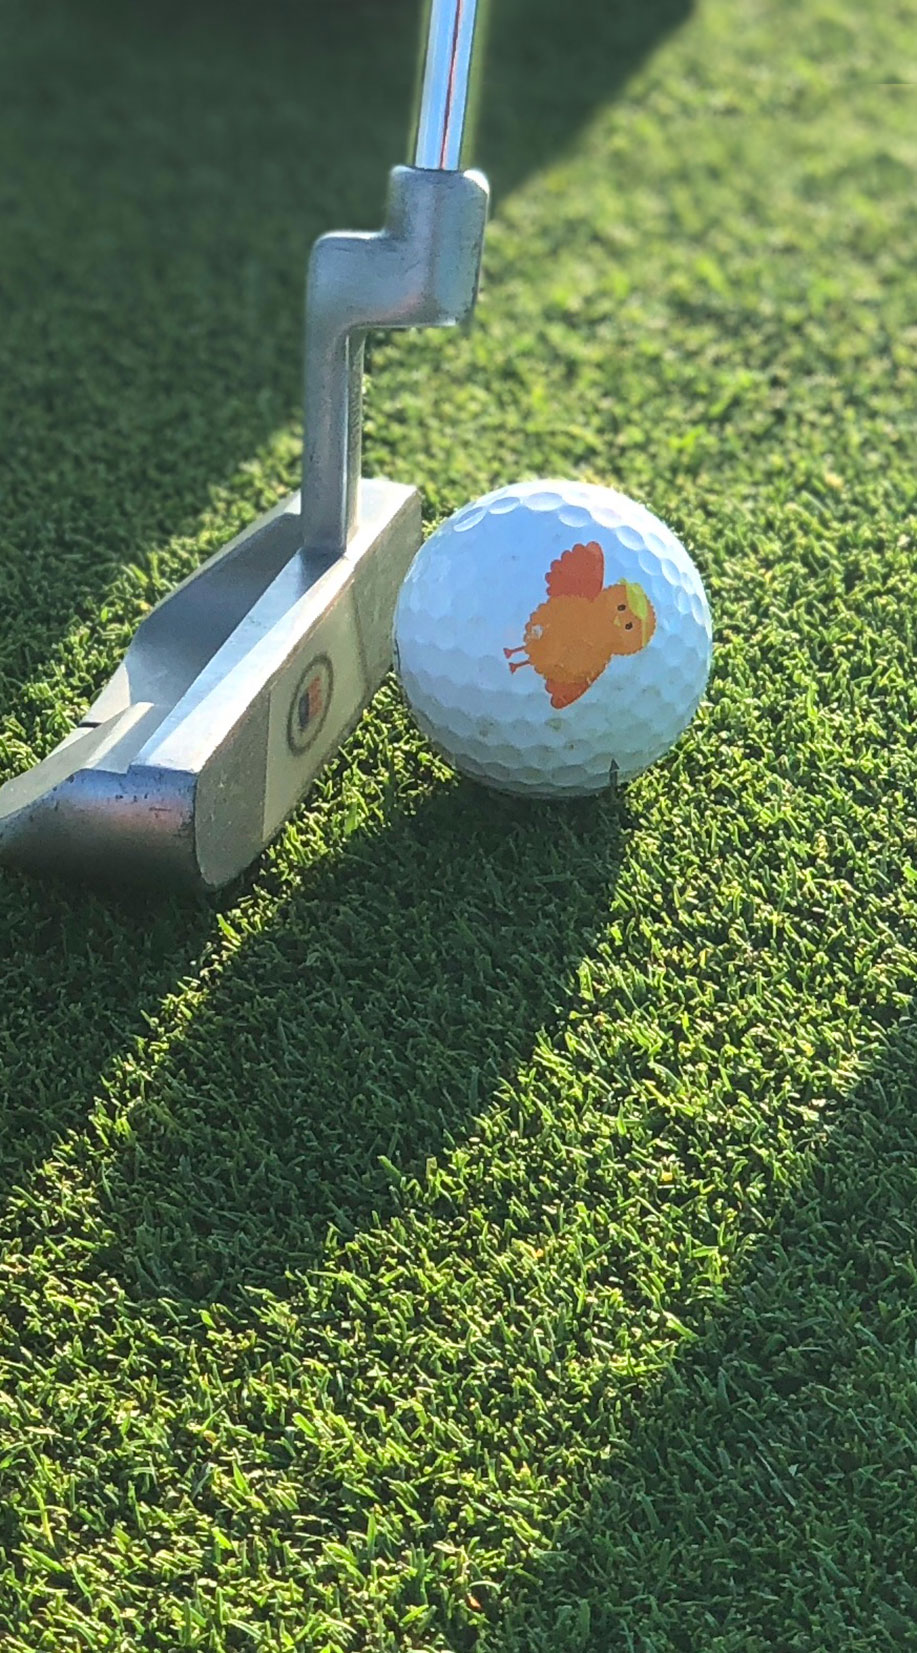 Birdie Basic Membership Details - Year One Membership$999$200 off for Operation 36 Club Members. Email info@birdie-basics.com for coupon code.Annual Renewal$399Additional Chaptersof 8-session curriculum with associated materials$299